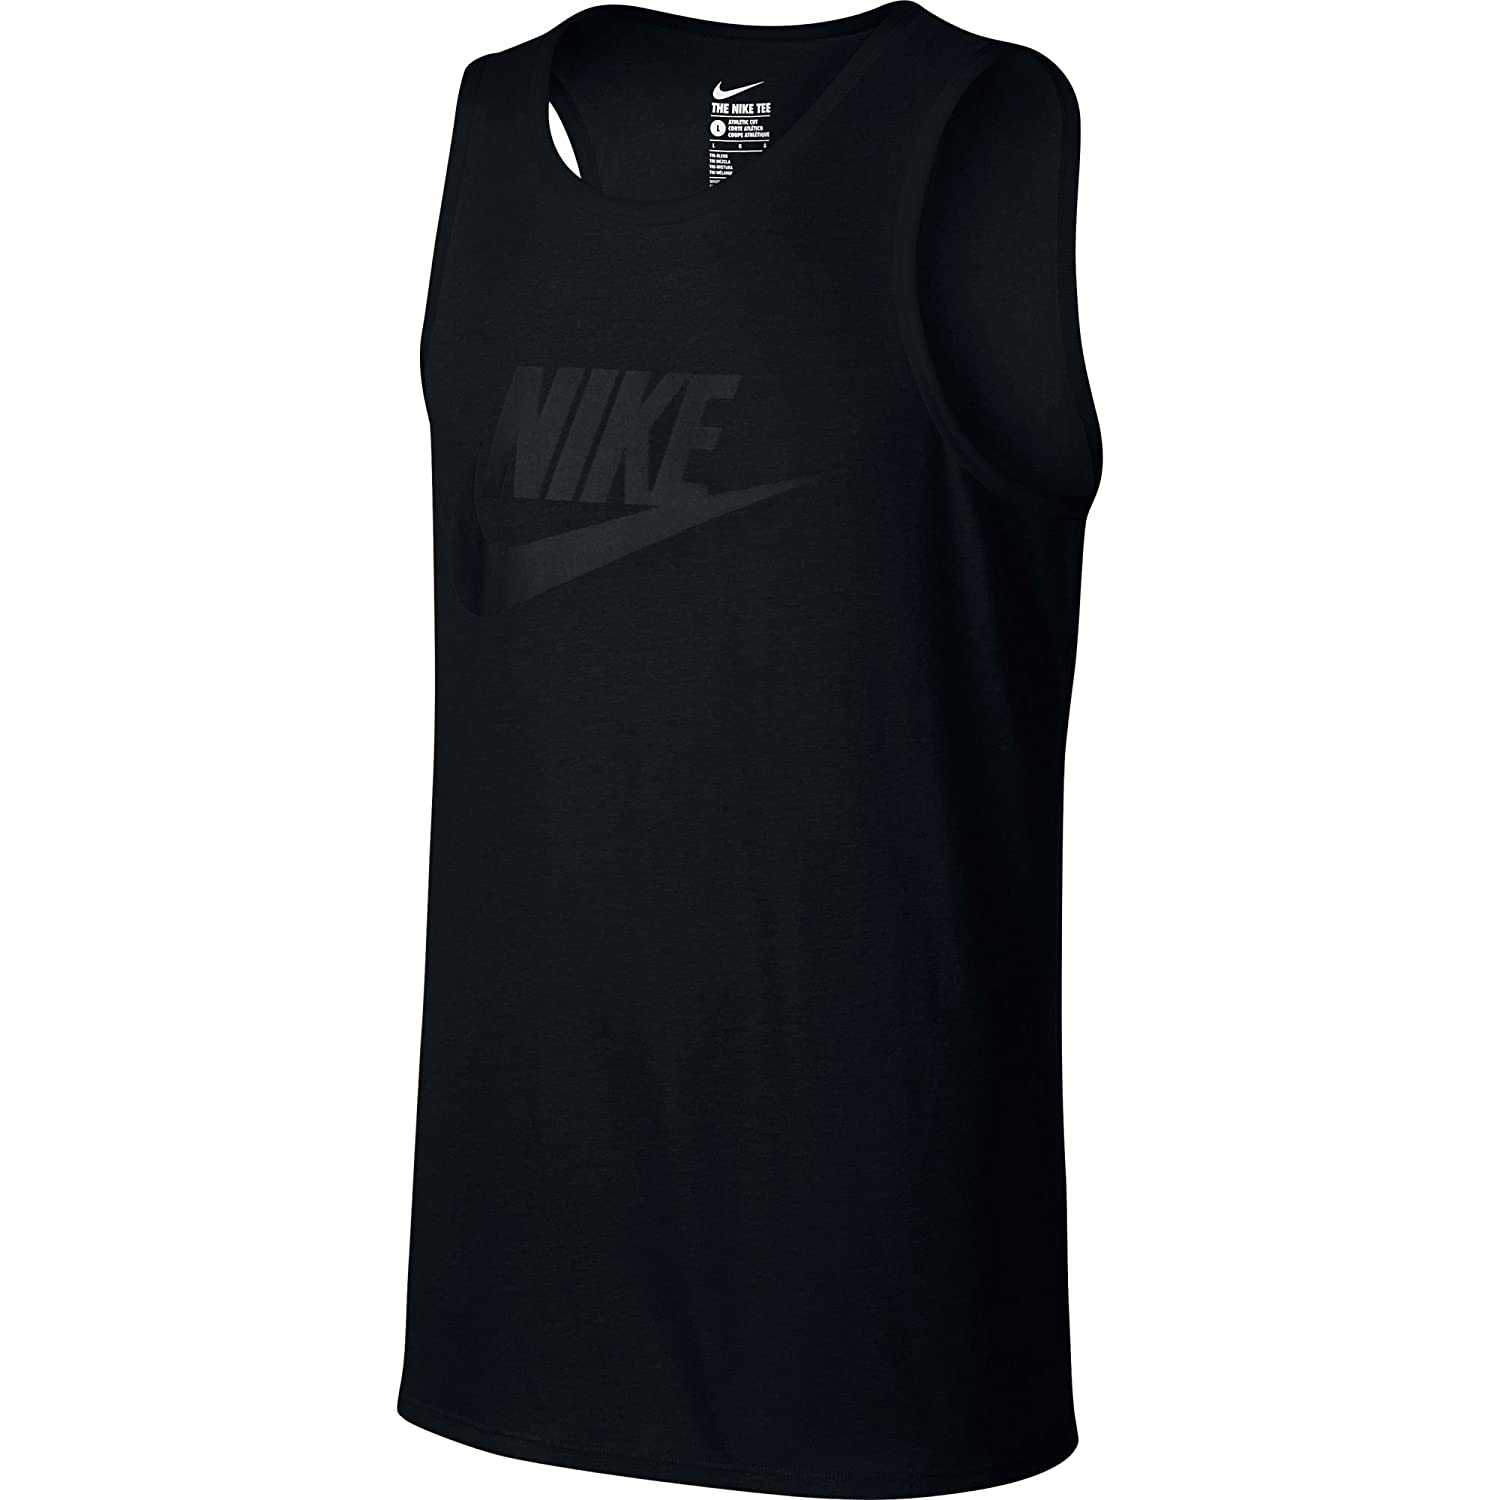 a59b36409b6ab Nike Men s Ace Logo Tank Top at Amazon Men s Clothing store